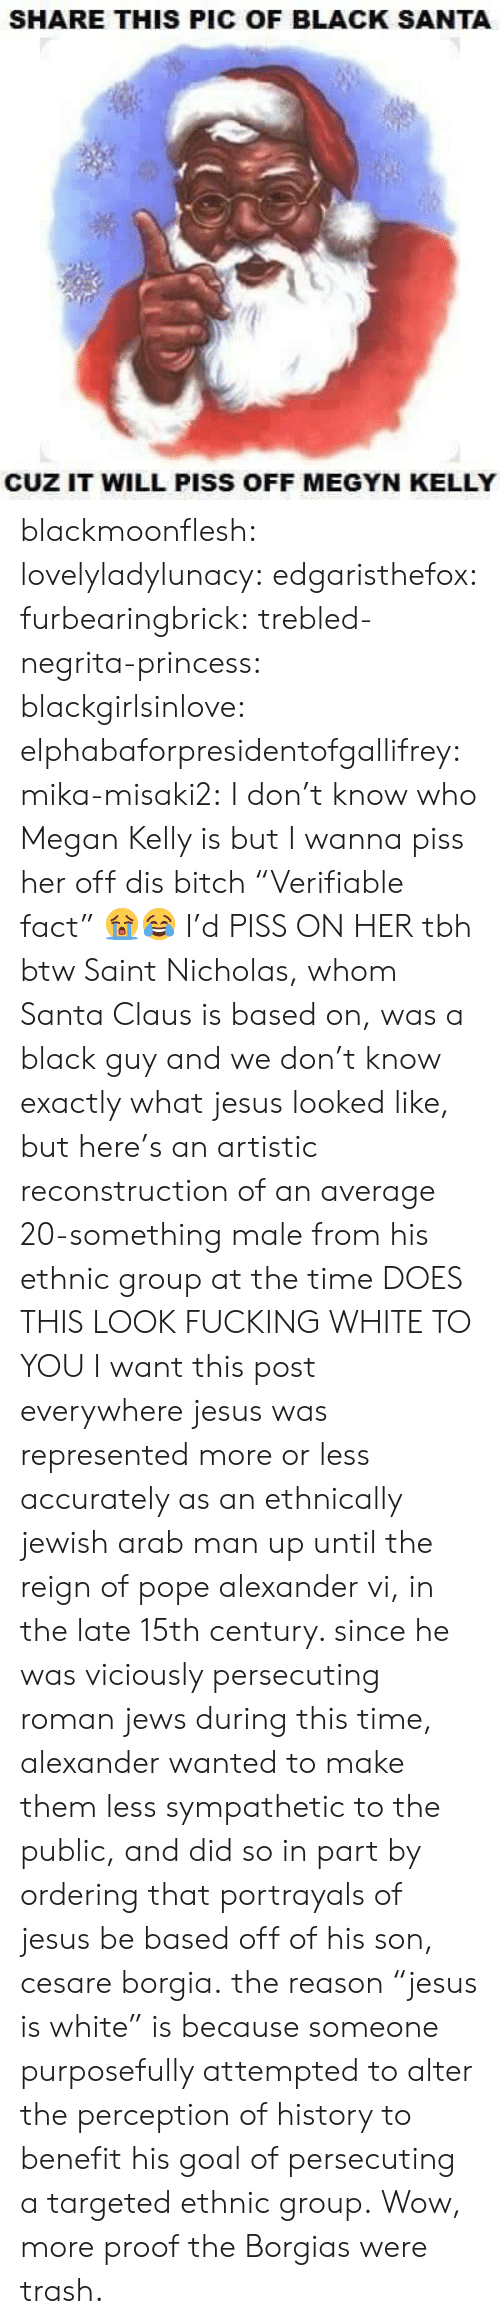 """Bitch, Fucking, and Jesus: SHARE THIS PIC OF BLACK SANTA  CUZ IT WILL PISS OFF MEGYN KELLY blackmoonflesh: lovelyladylunacy:  edgaristhefox:  furbearingbrick:  trebled-negrita-princess:  blackgirlsinlove:  elphabaforpresidentofgallifrey:  mika-misaki2:  I don't know who Megan Kelly is but I wanna piss her off  dis bitch   """"Verifiable fact"""" 😭😂  I'd PISS ON HER tbh  btw Saint Nicholas, whom Santa Clausis based on, was a black guy and we don't know exactly what jesus looked like, but here's an artistic reconstruction of an average 20-something male from his ethnic group at the time DOES THIS LOOK FUCKING WHITE TO YOU  I want this post everywhere  jesuswas represented more or less accurately as an ethnically jewish arab man up until the reign of pope alexander vi, in the late 15th century. since he was viciously persecuting roman jews during this time, alexander wanted to make them less sympathetic to the public, and did so in part by ordering that portrayals of jesus be based offof his son, cesareborgia. the reason""""jesus is white"""" is because someone purposefully attempted to alter the perception of history to benefit his goal of persecuting a targeted ethnic group.  Wow, more proof the Borgias were trash."""